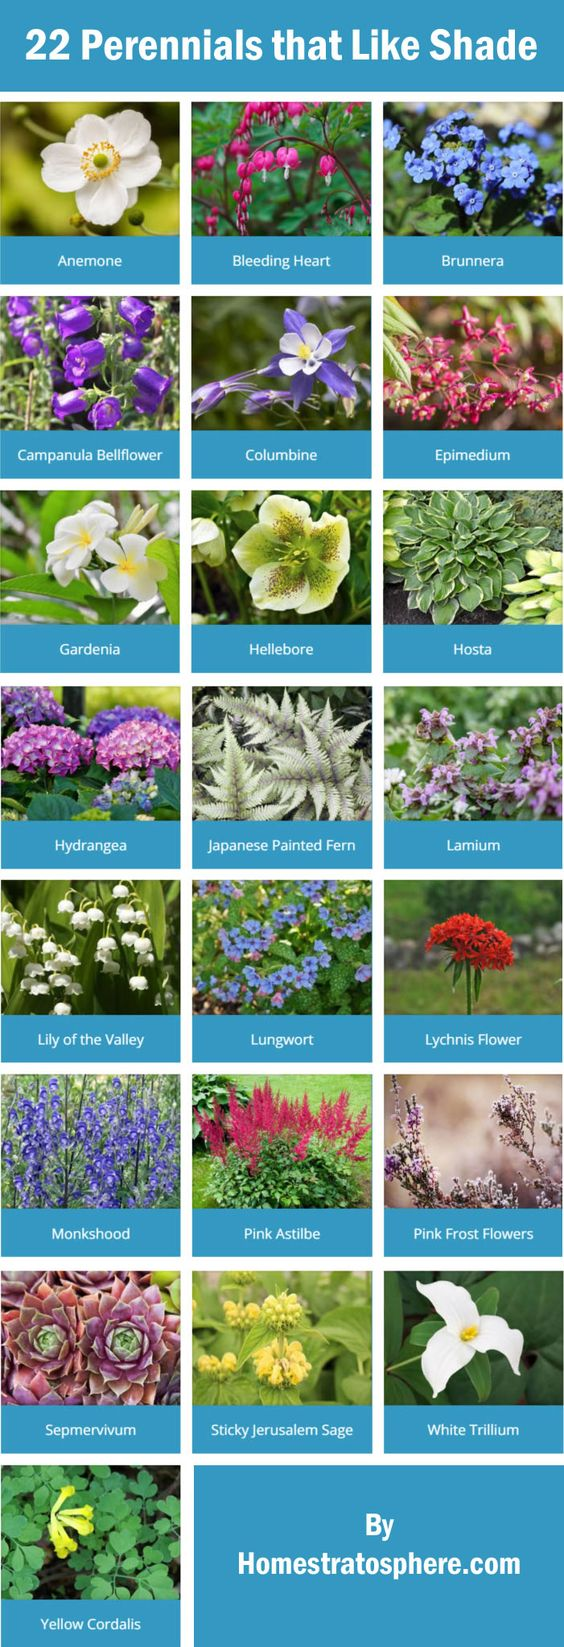 Perennials shade plants and shades on pinterest for Free perennial flower garden designs